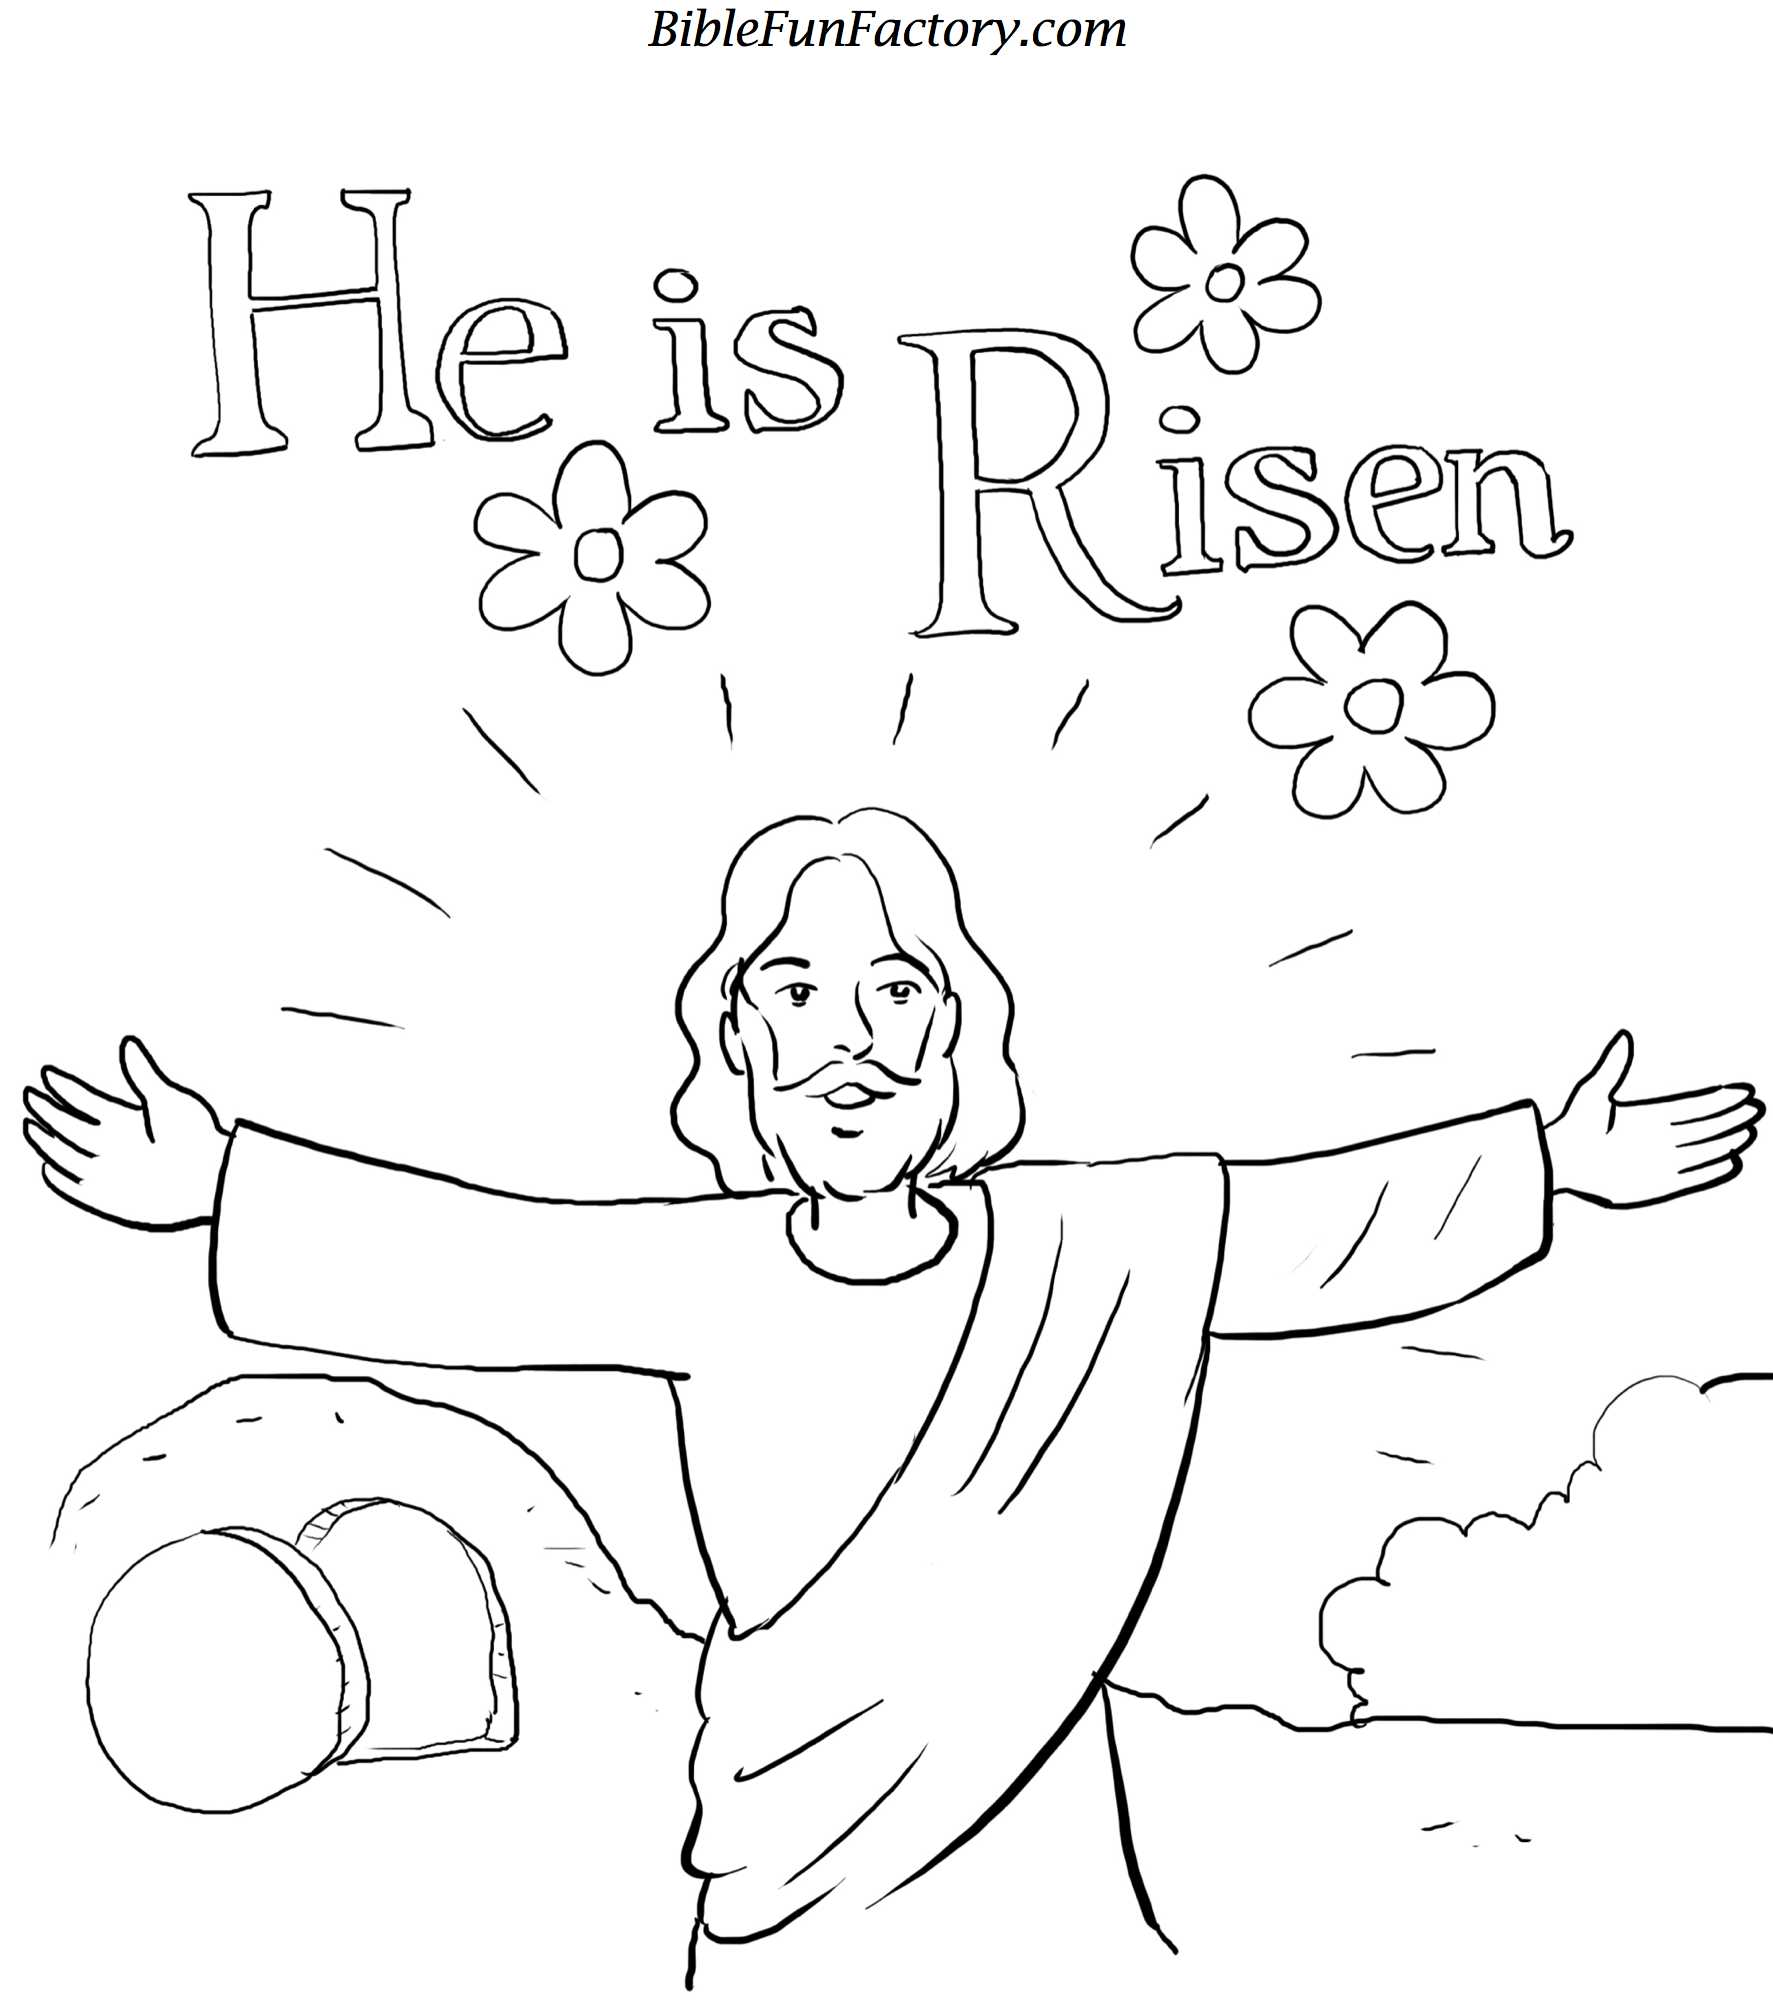 Free easter coloring sheet bible lessons games and for Preschool religious easter coloring pages printable